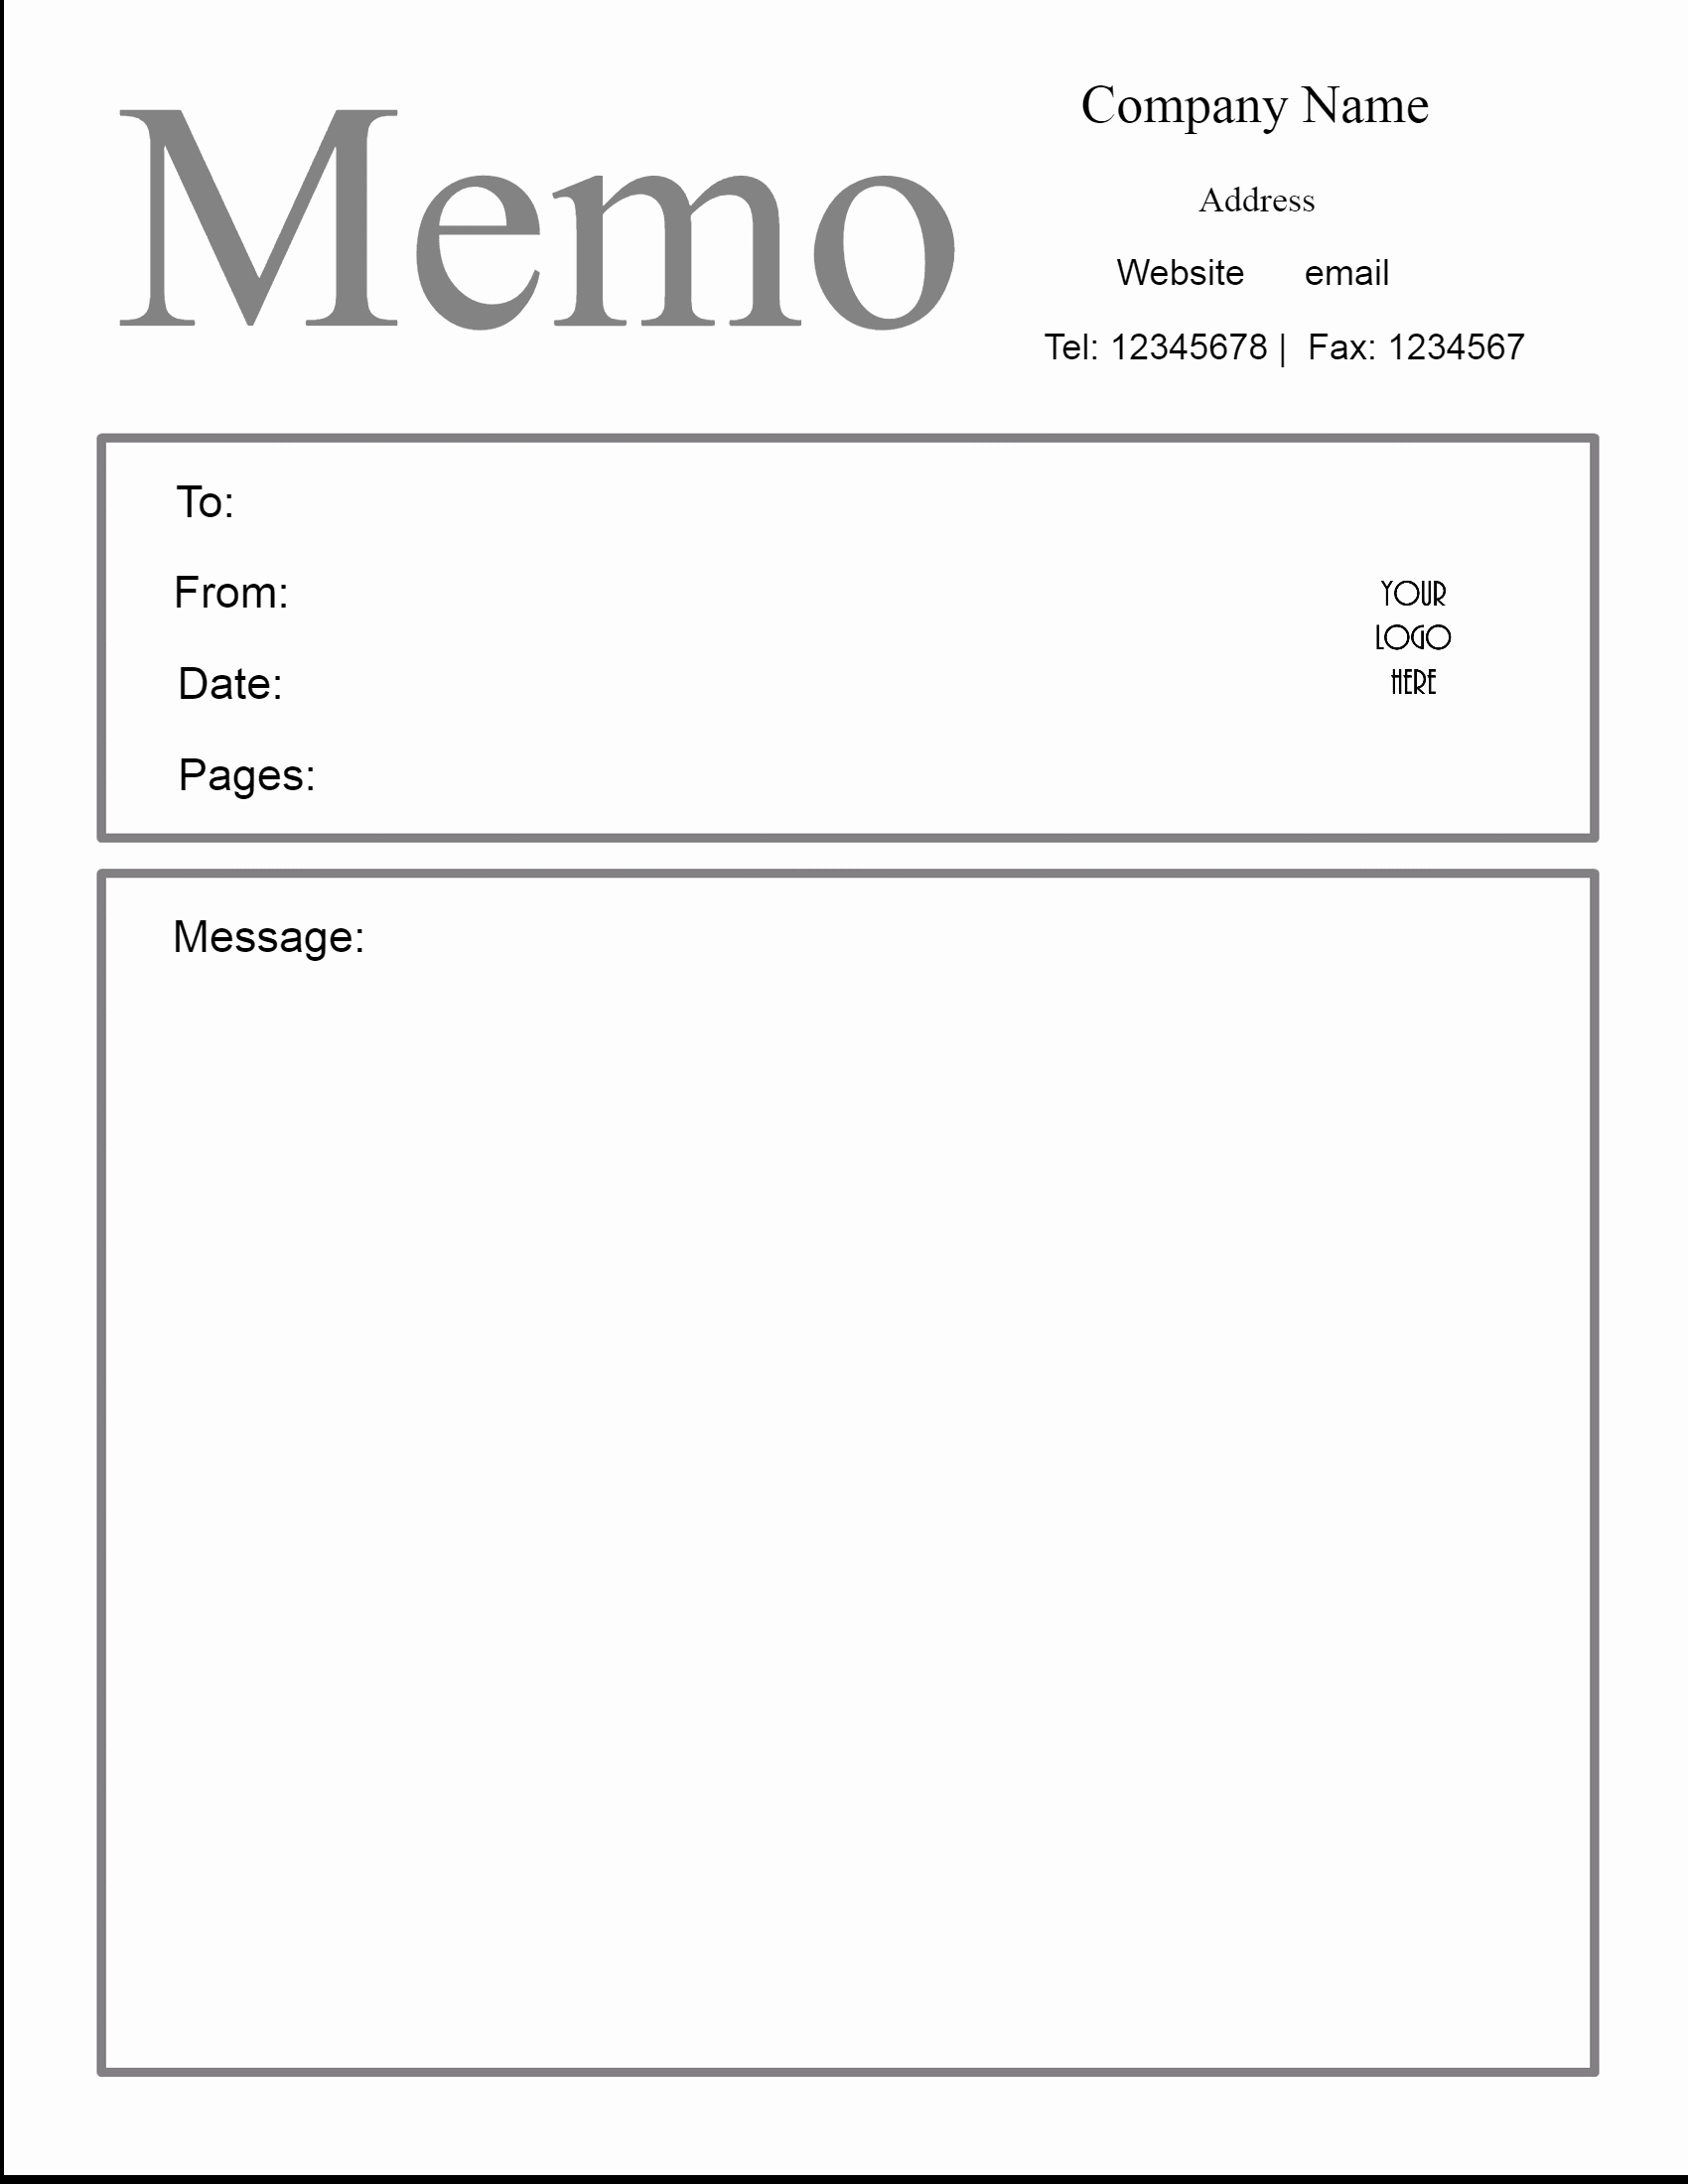 Memo Template for Word Best Of Free Microsoft Word Memo Template